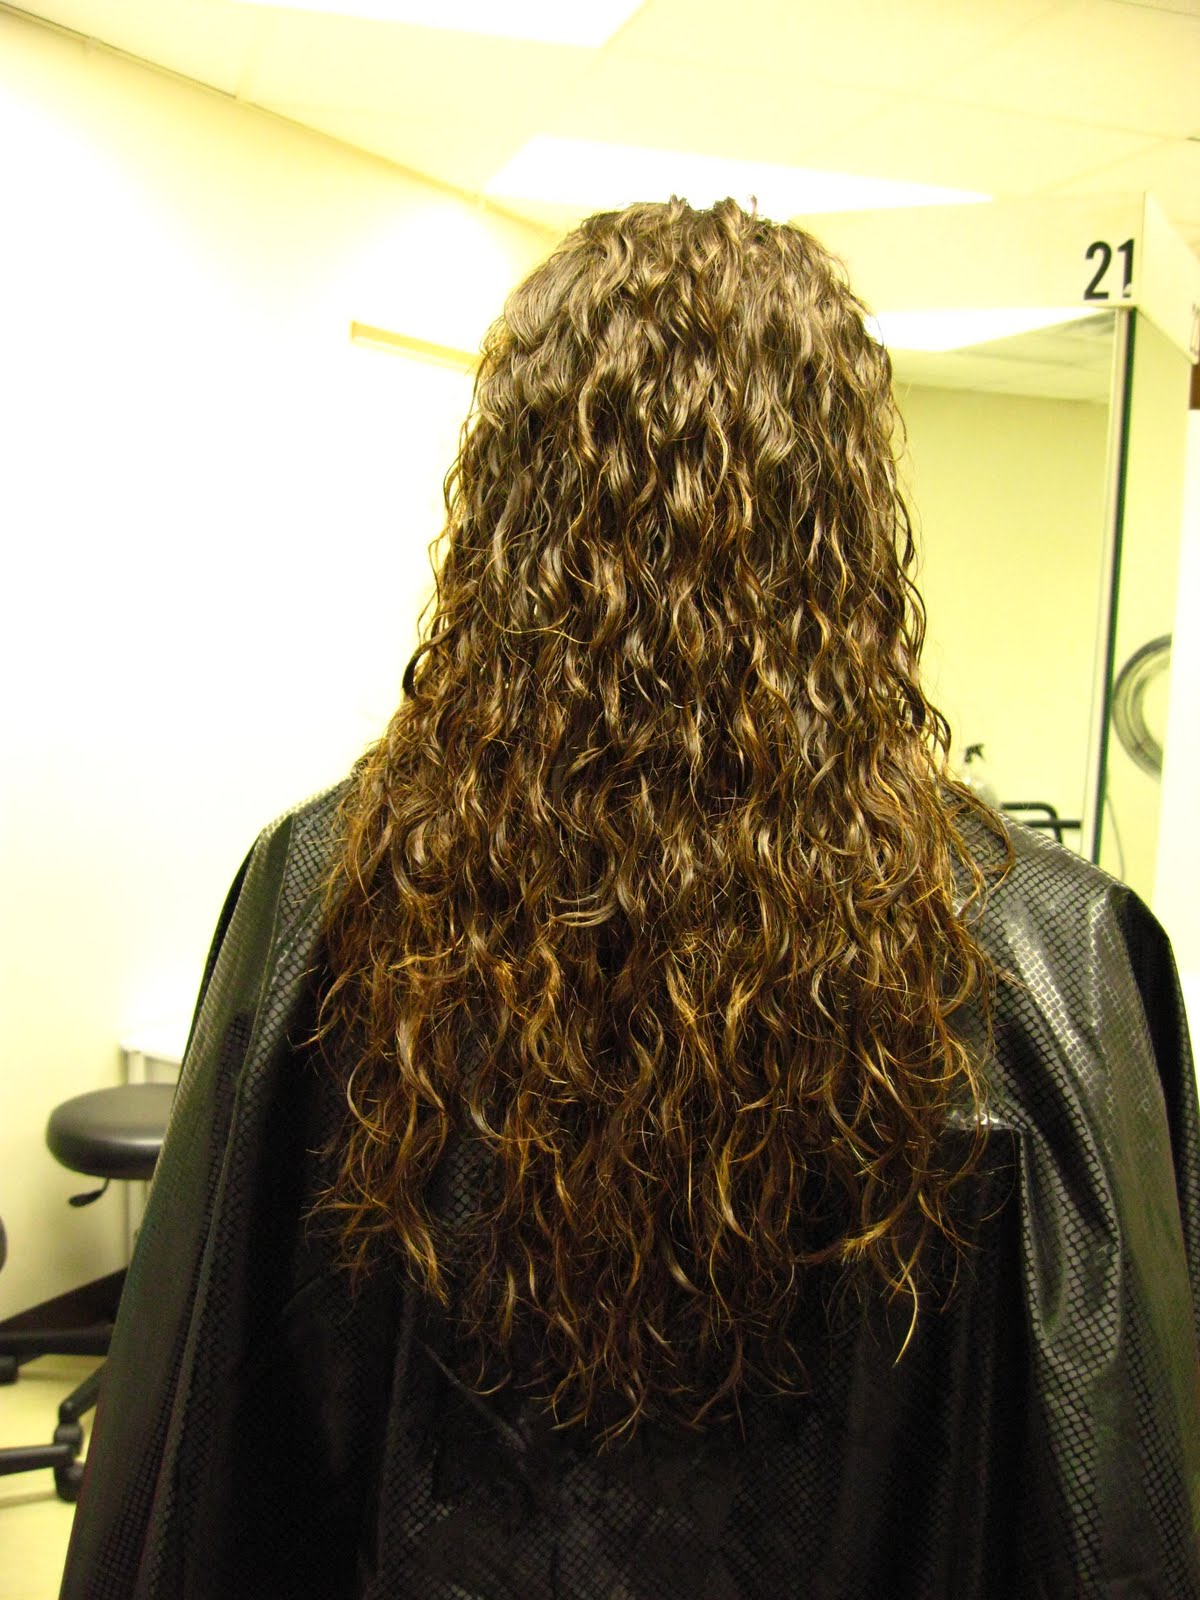 1000+ images about Perm vs. Curling Iron on Pinterest